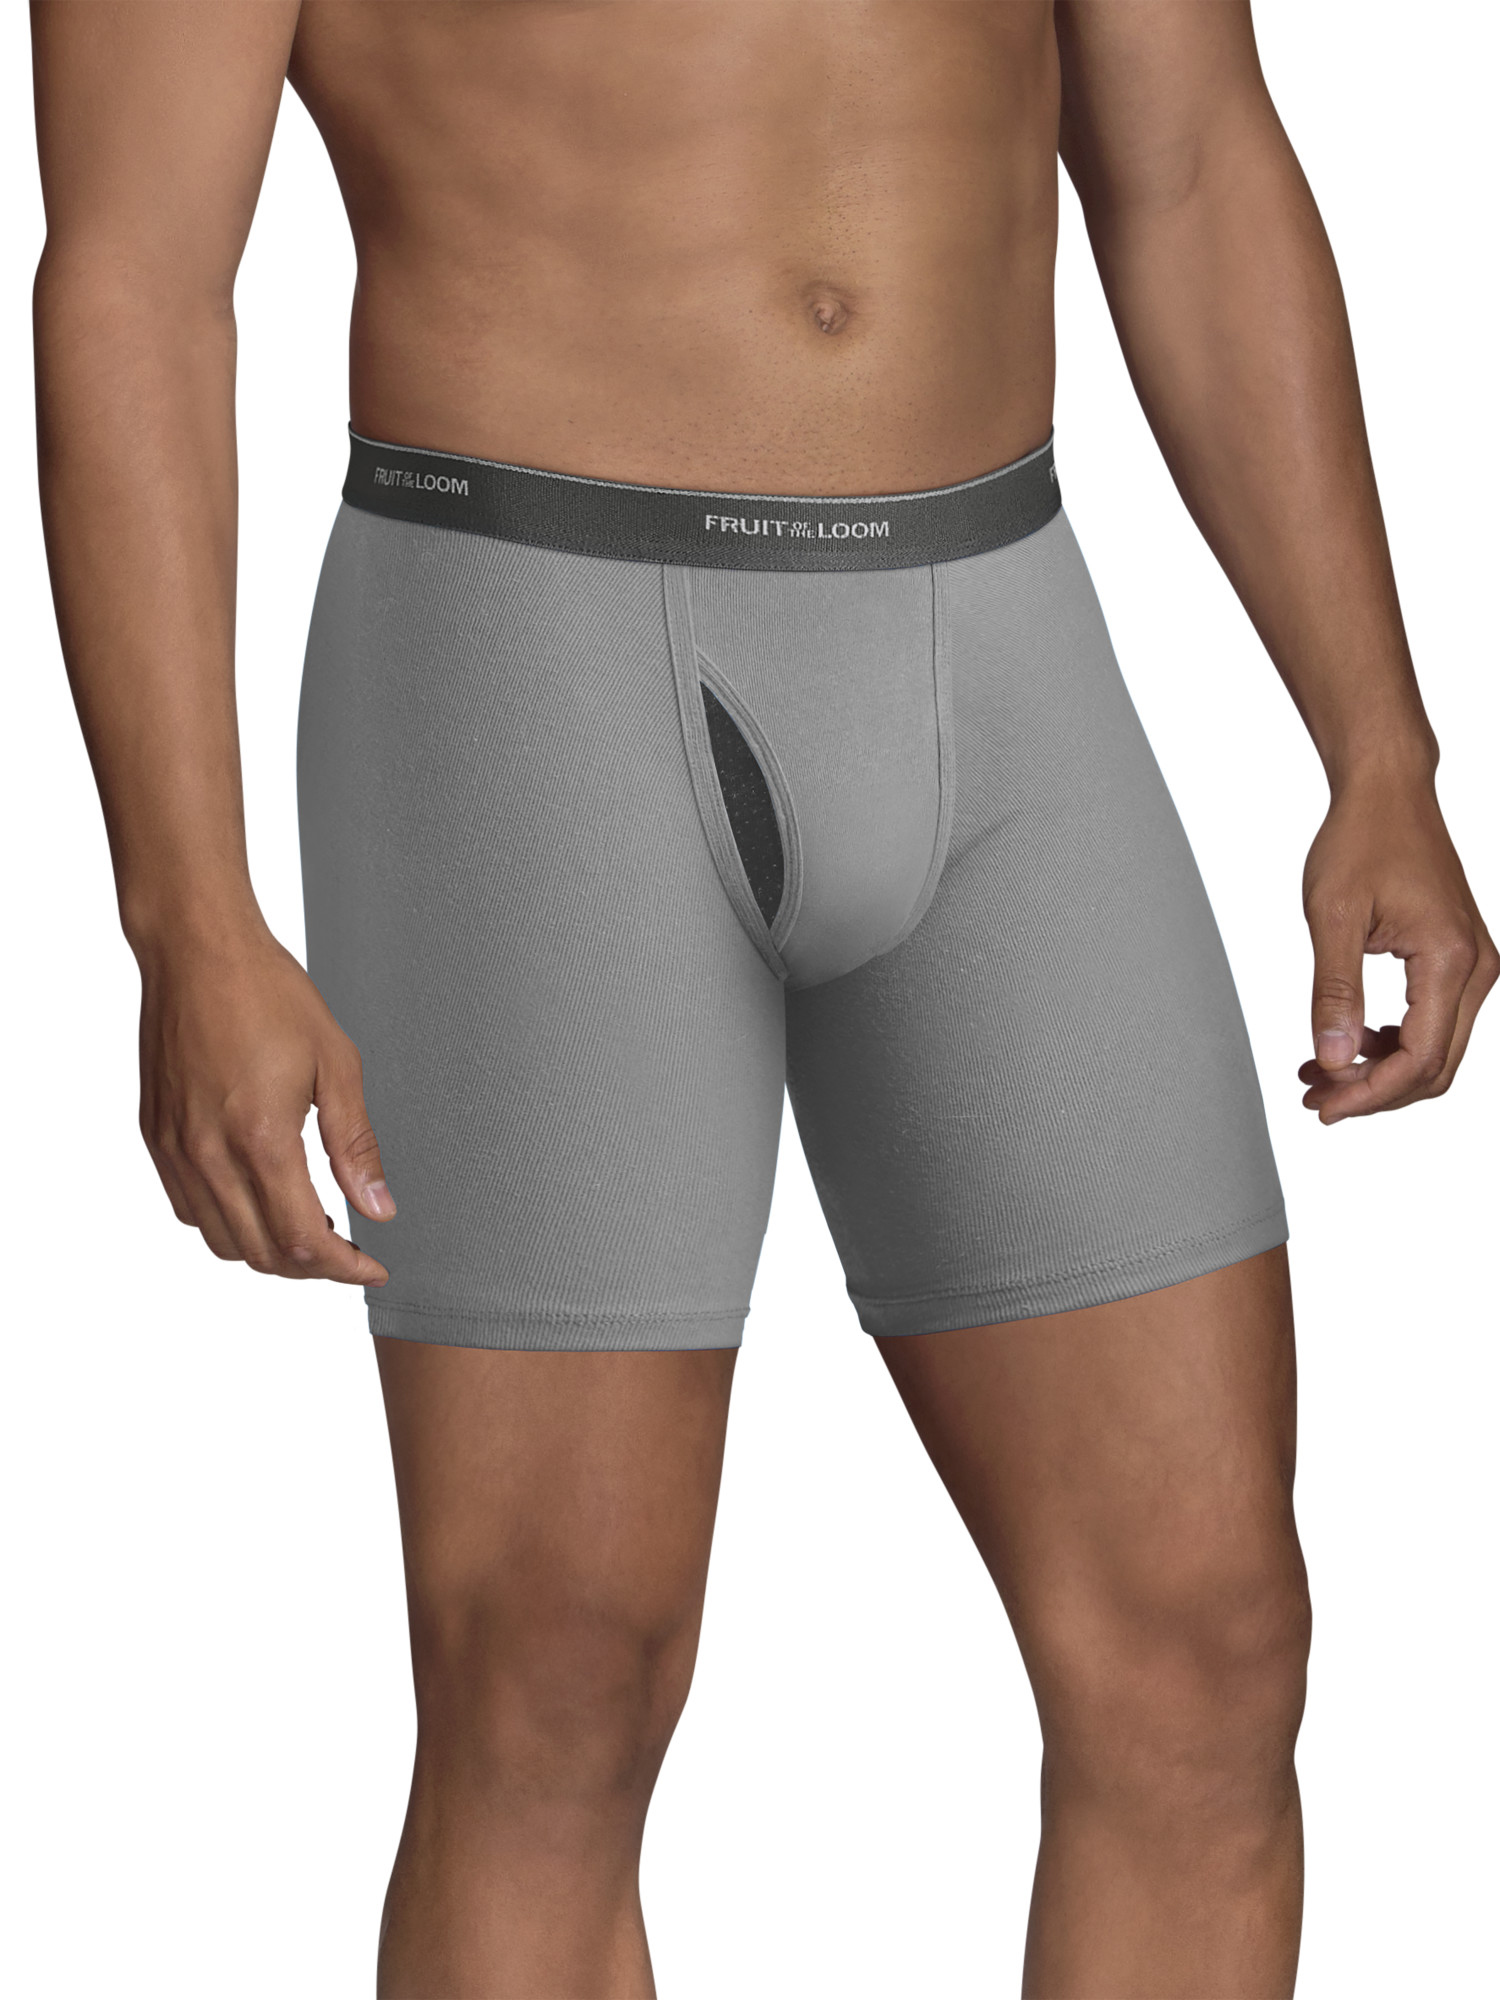 Big Men's CoolZone Fly Dual Defense Black and Gray Boxer Briefs, Extended Sizes, 4 Pack